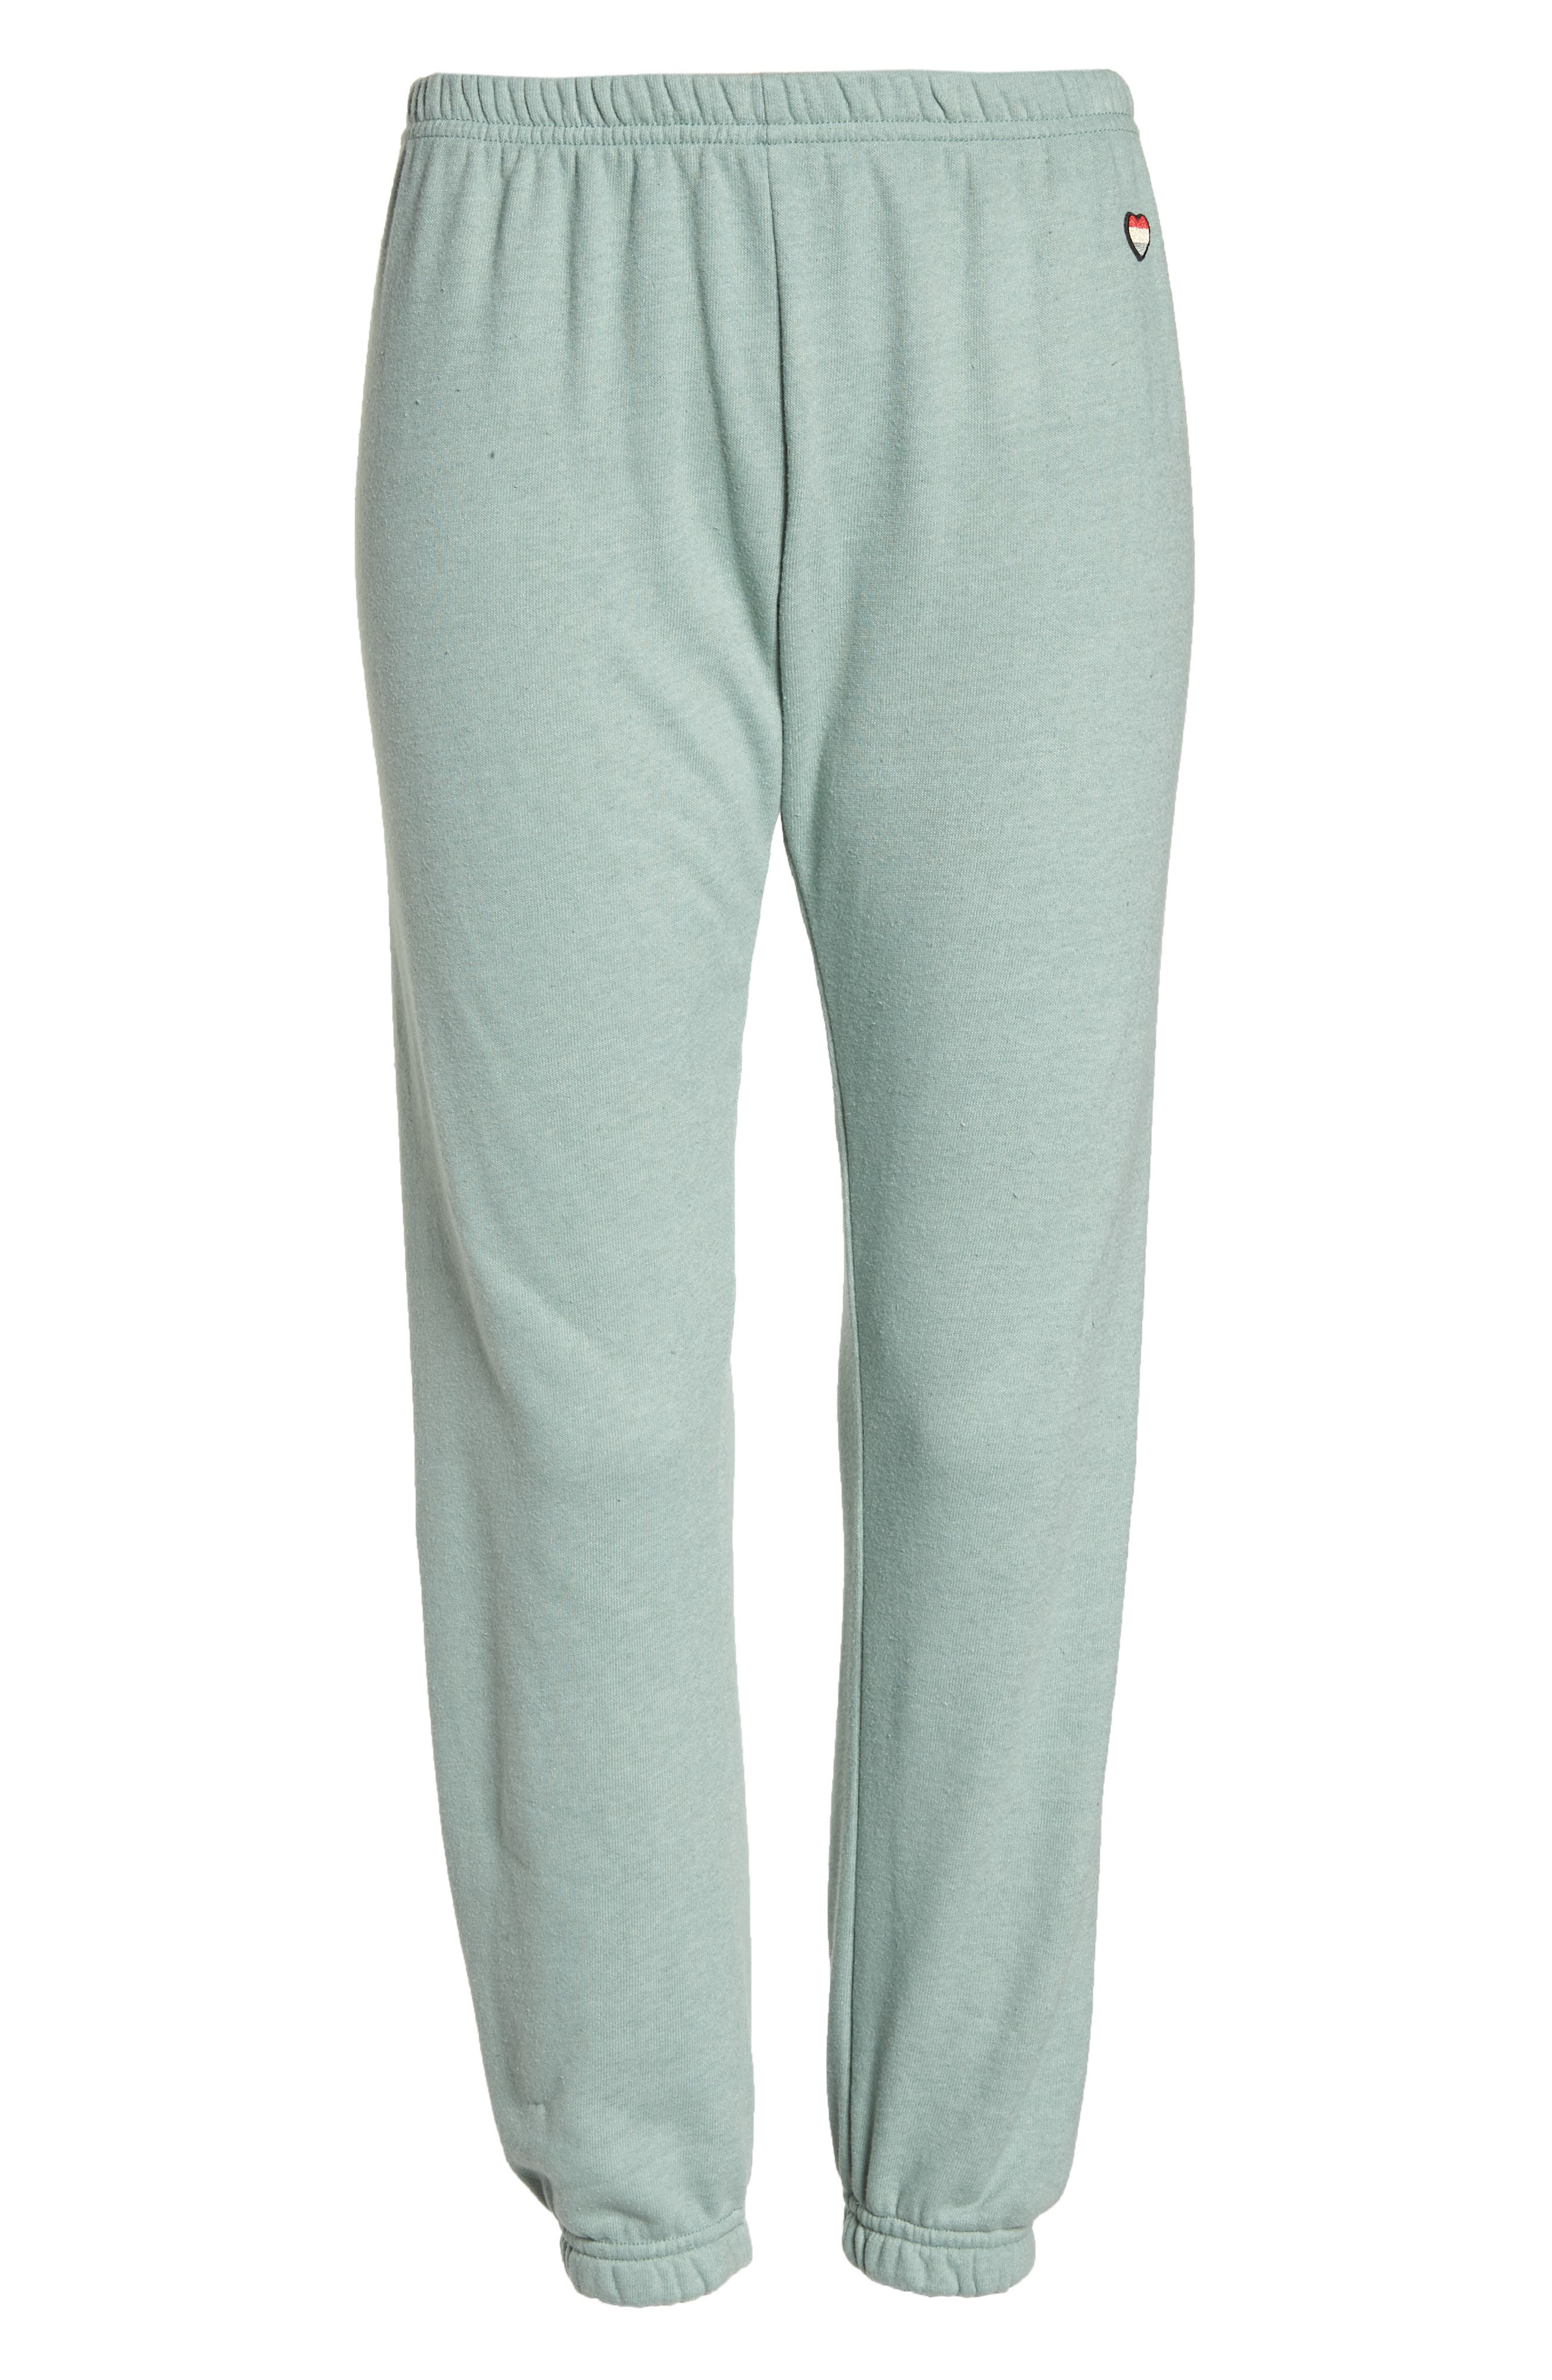 SPIRITUAL GANGSTER,                             Only Love Perfect Sweatpants,                             Alternate thumbnail 7, color,                             314